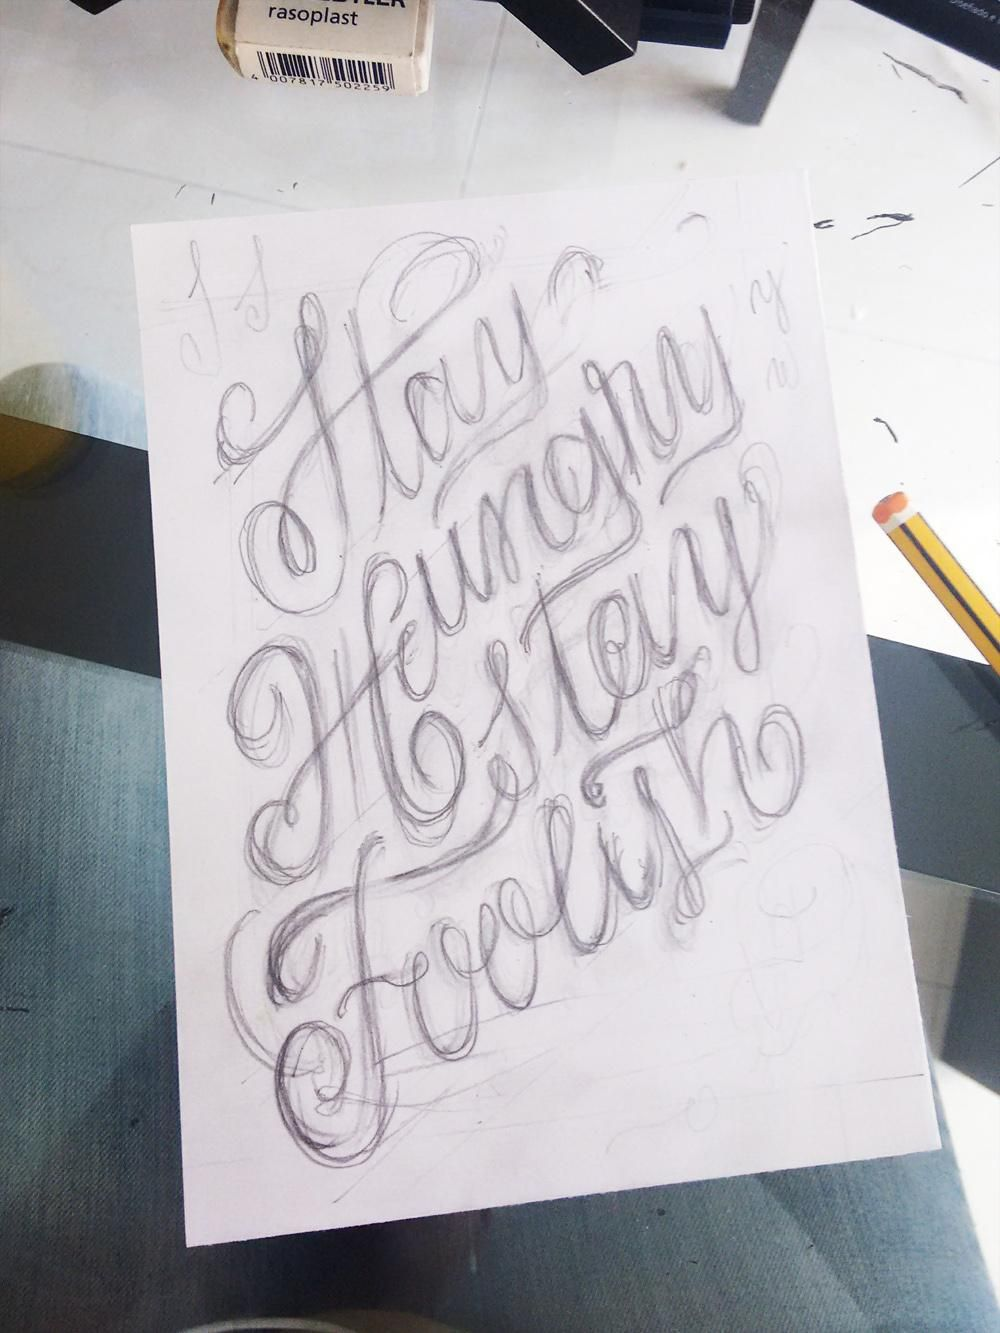 Stay Hungry - image 1 - student project